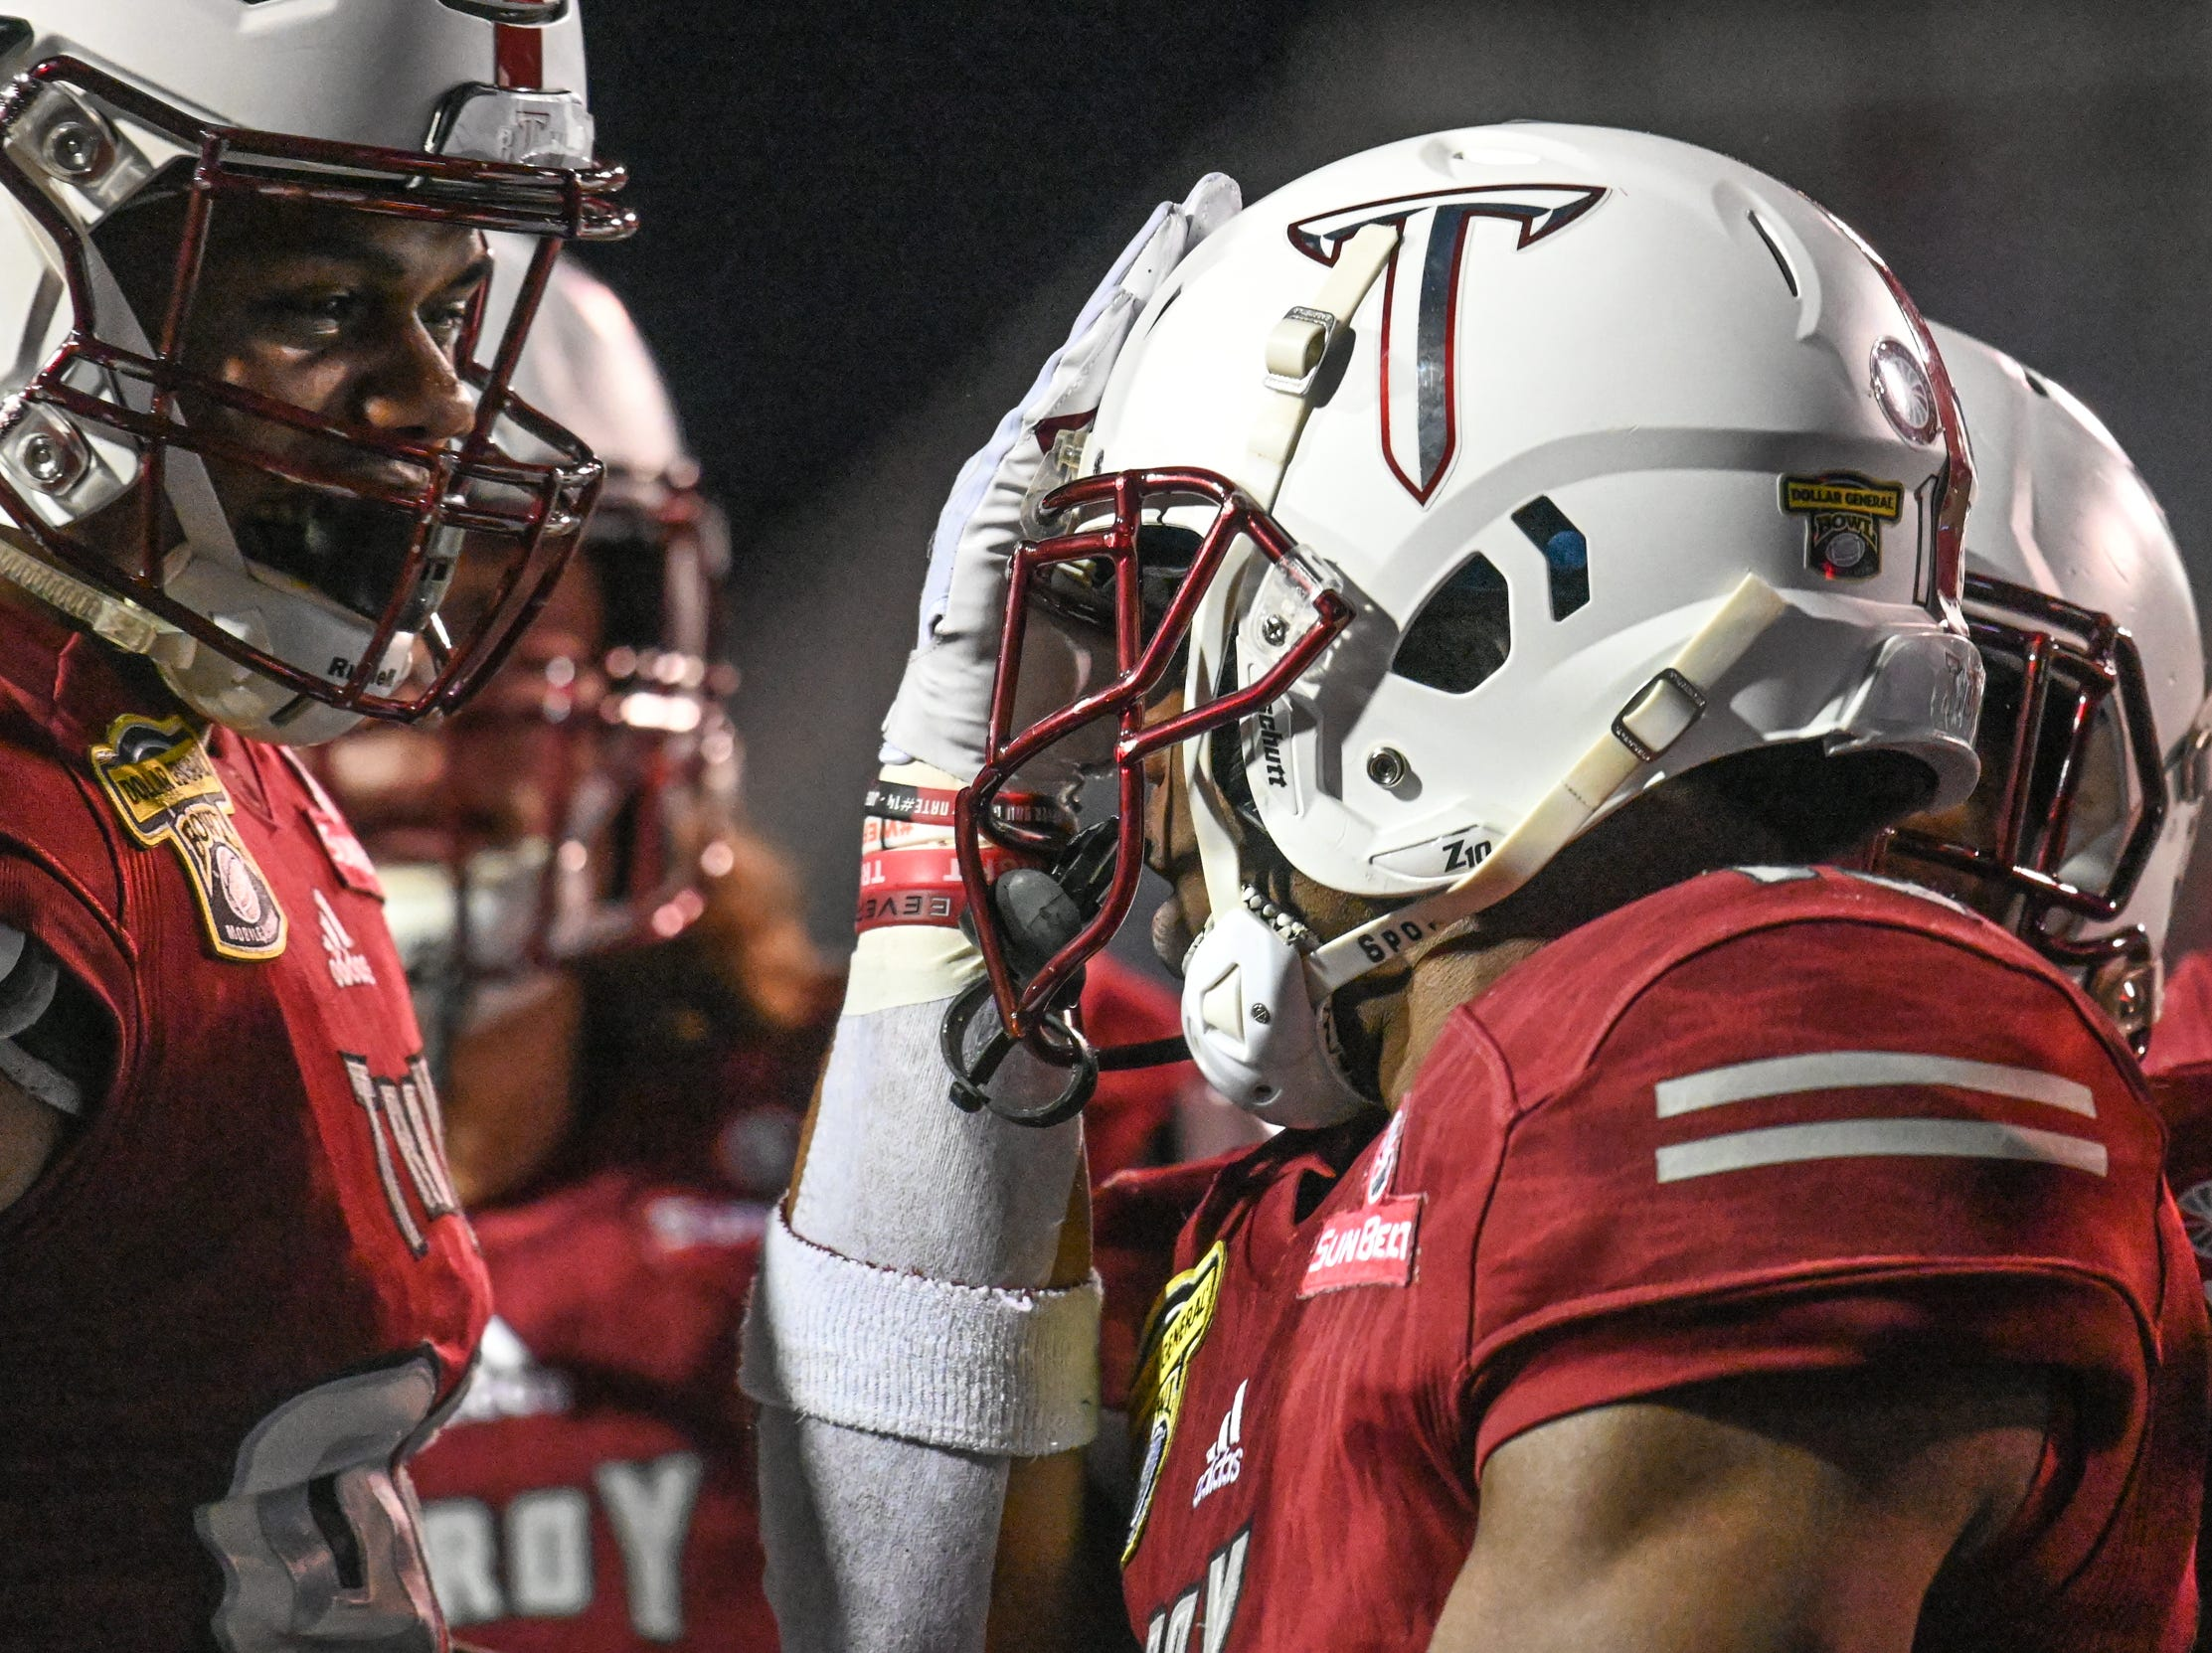 The Troy offense celebrates a first quarter touchdown against Buffalo during the Dollar General Bowl held at Ladd-Peebles Stadium in Mobile on Saturday, Dec. 22, 2018.